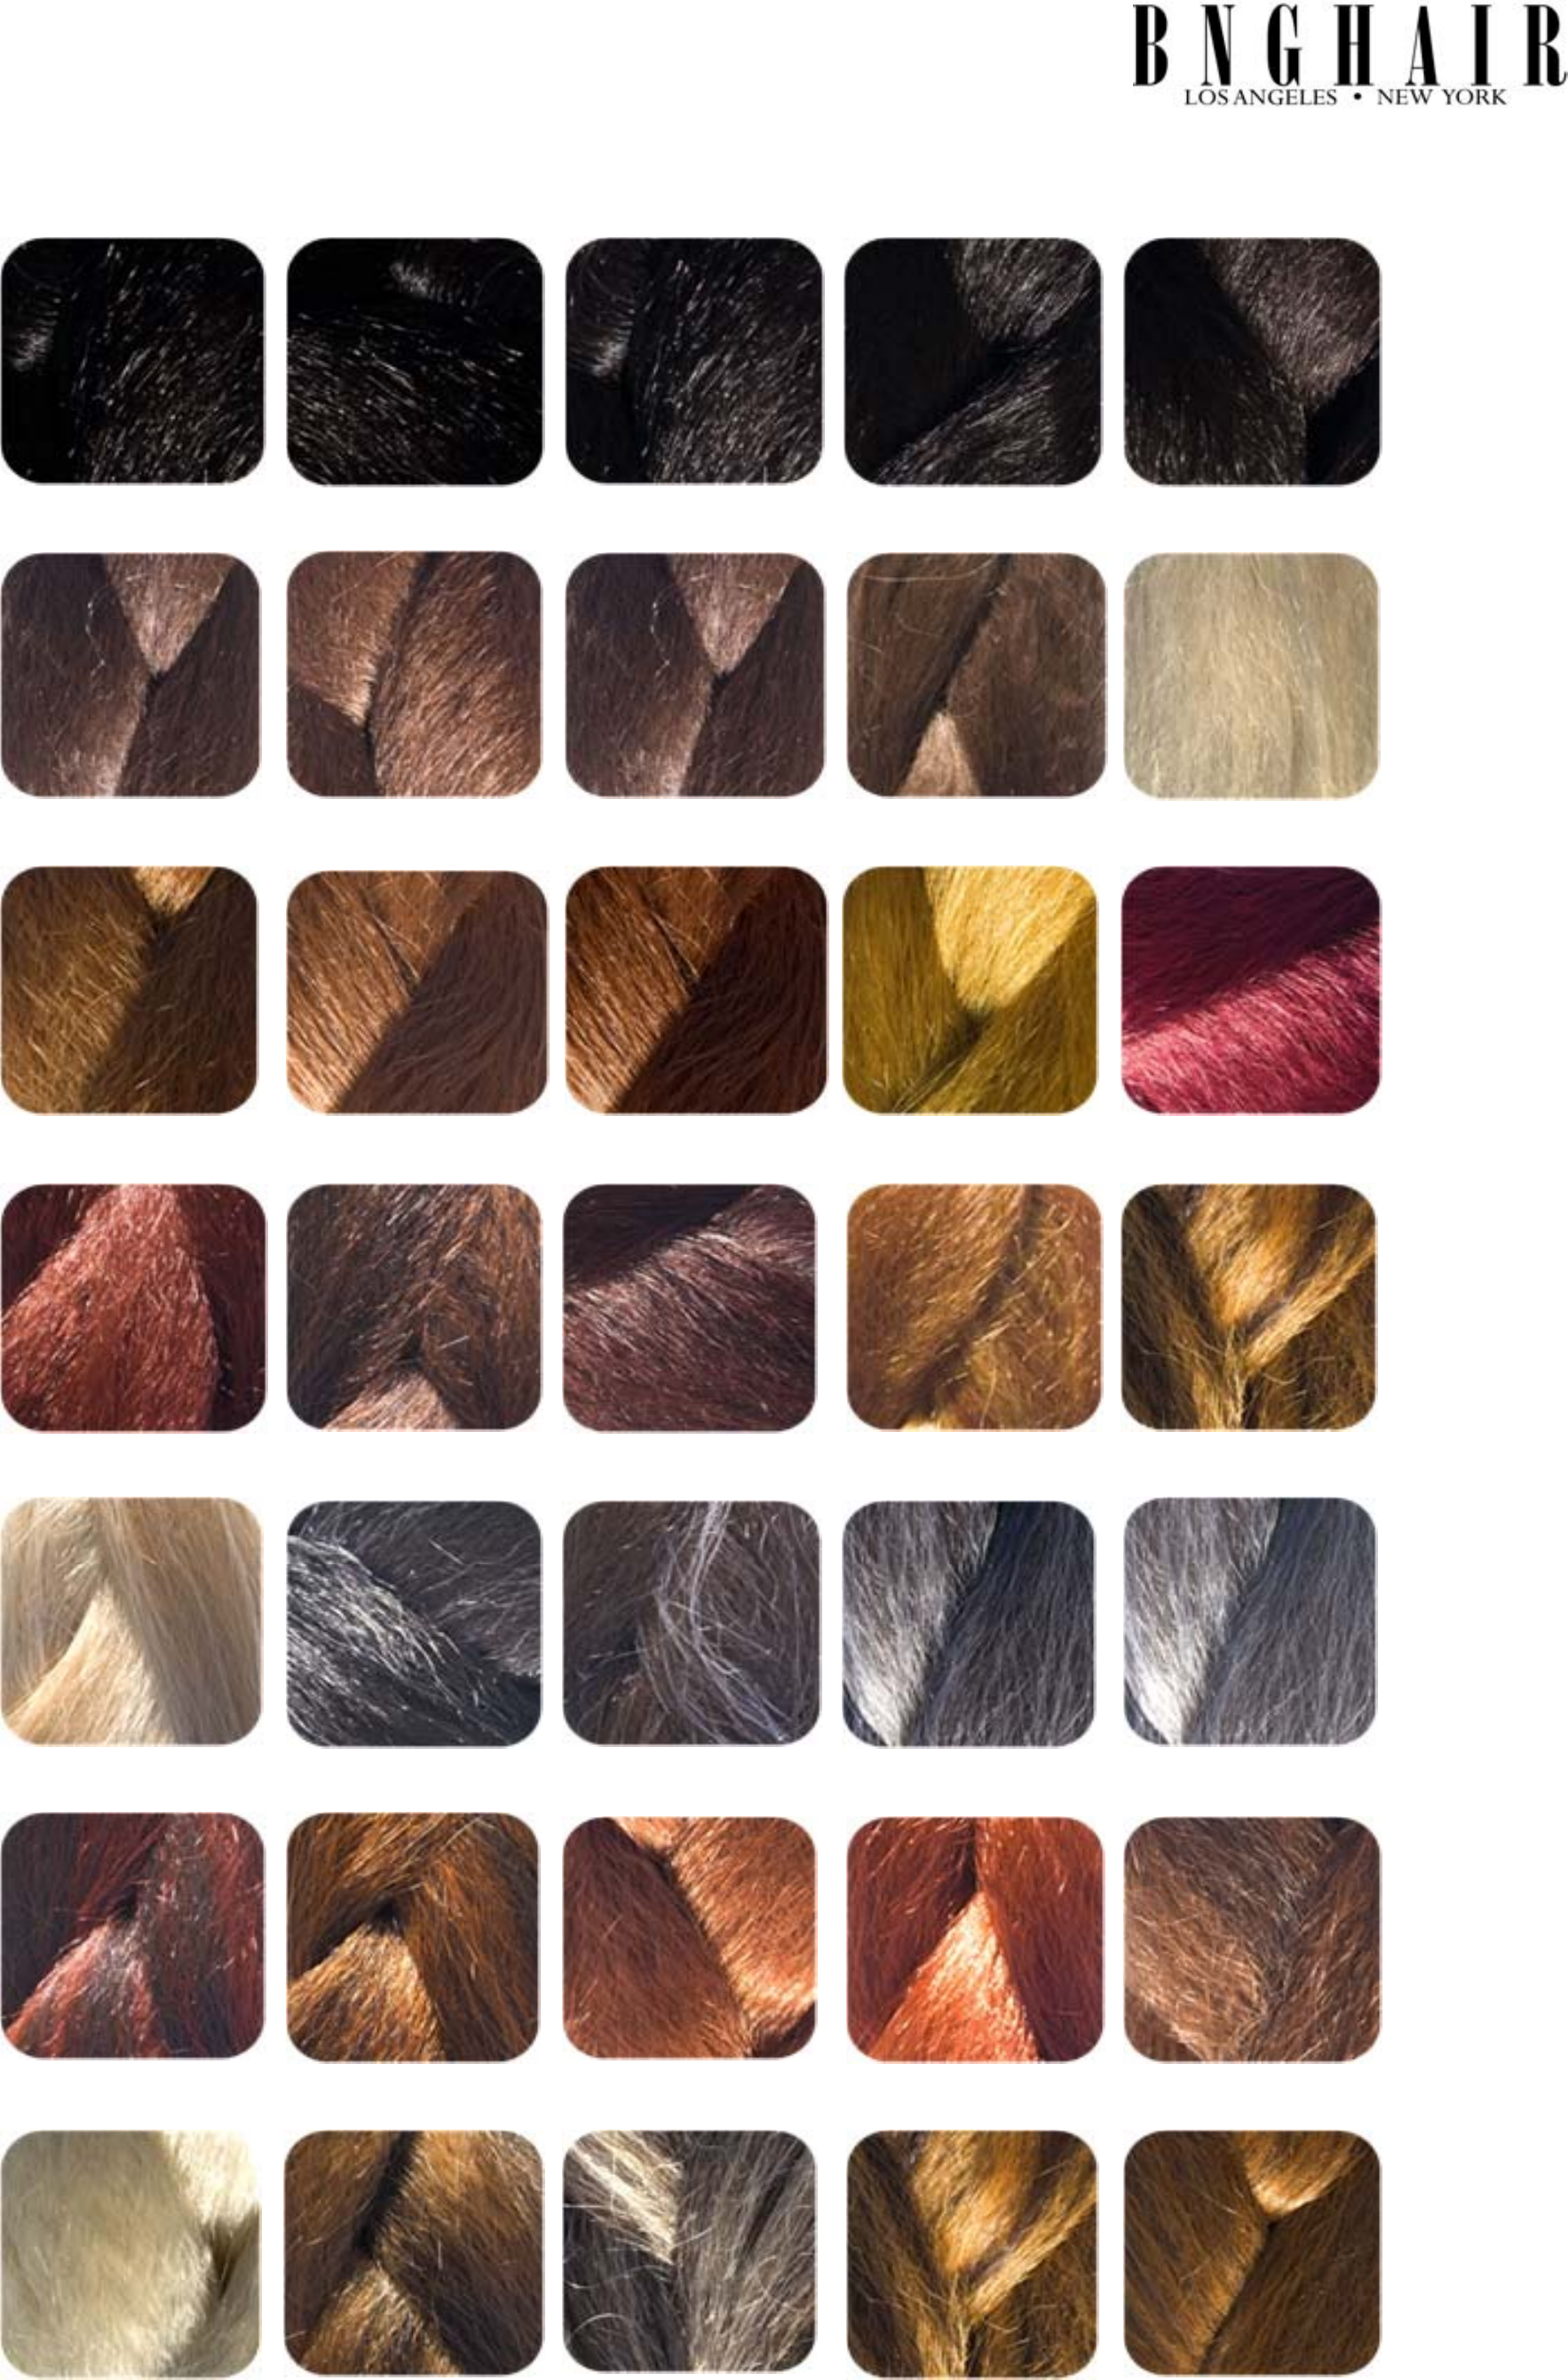 Classic braid kanekalon color chart free download classic braid kanekalon color chart nvjuhfo Image collections